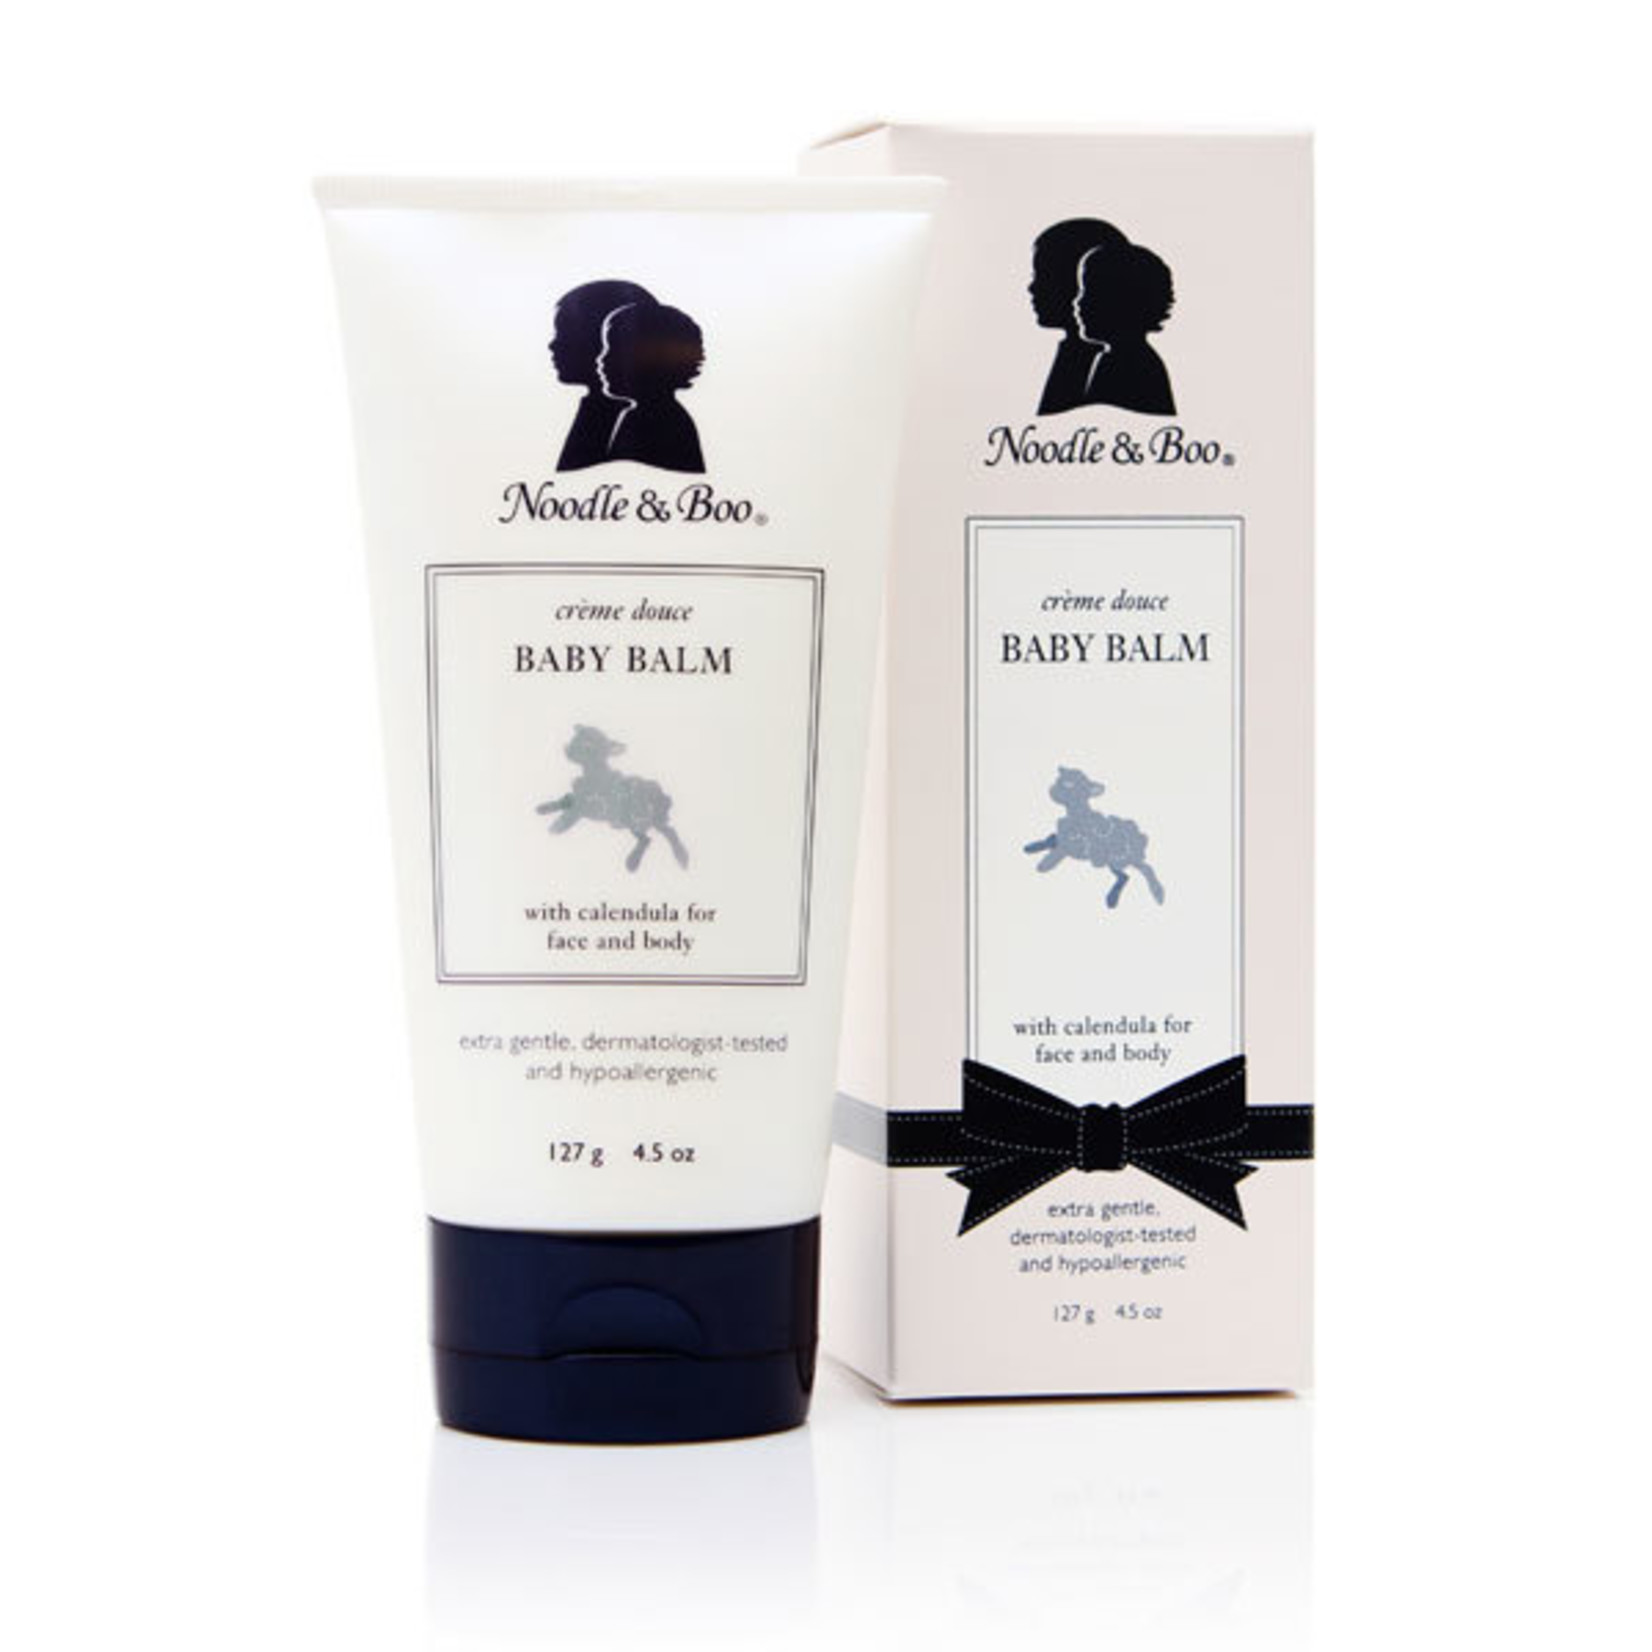 Noodle & Boo Baby Balm (in store)